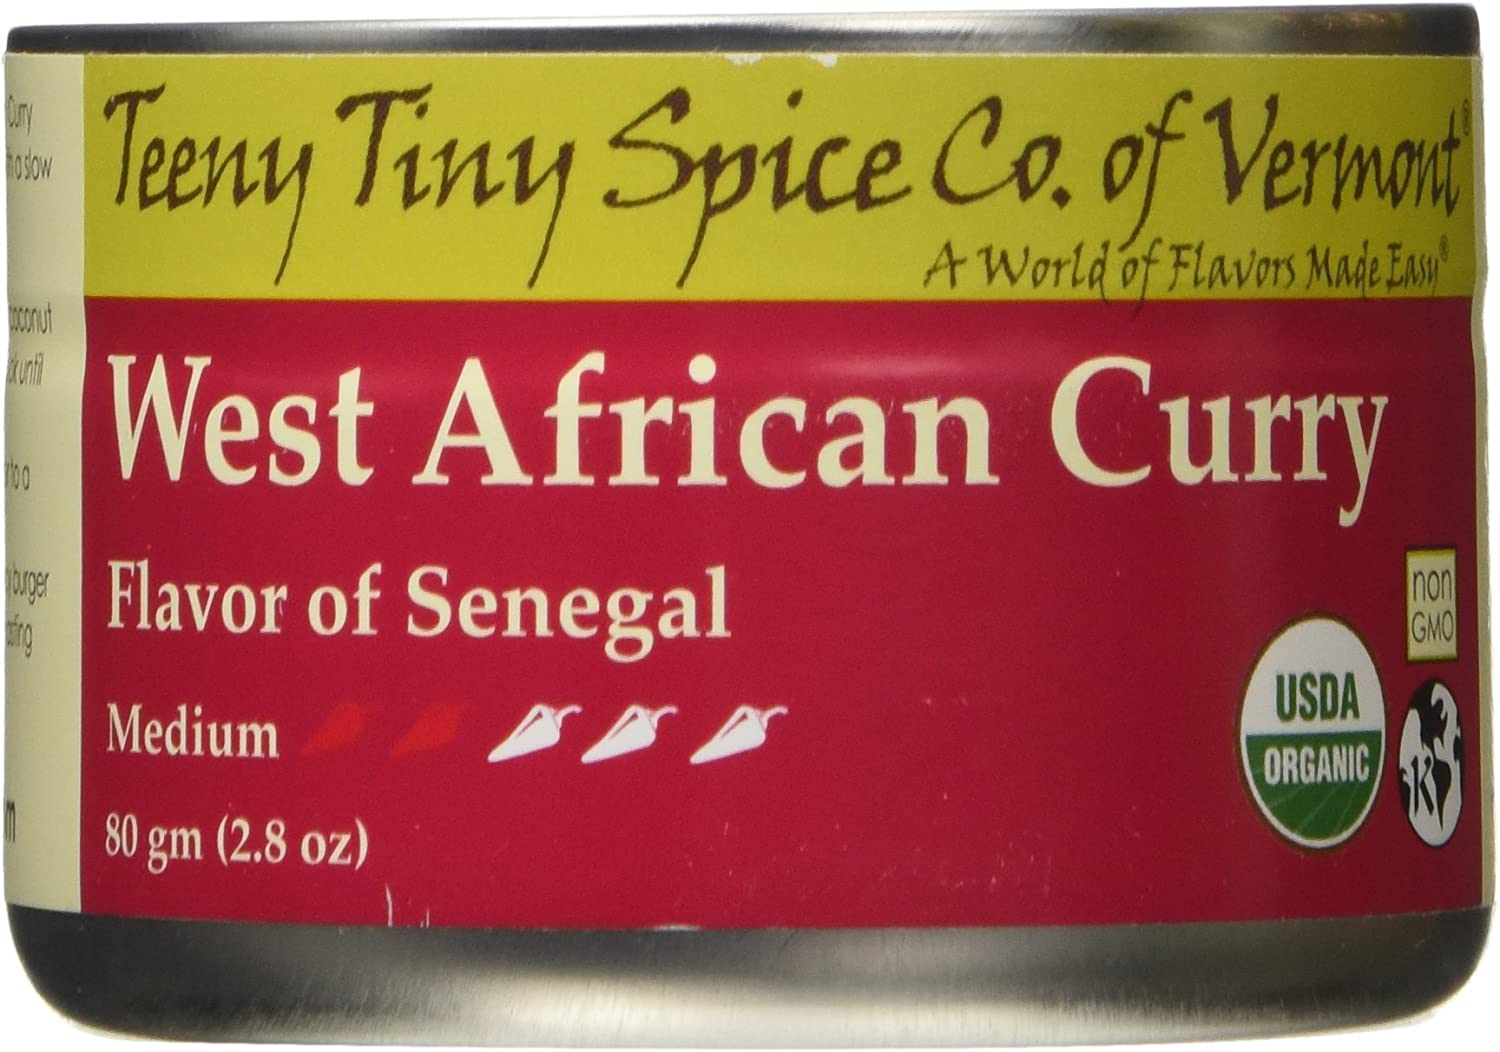 Teeny Tiny Spice Co of Vermont Organic West African Curry, 2.8 Oz